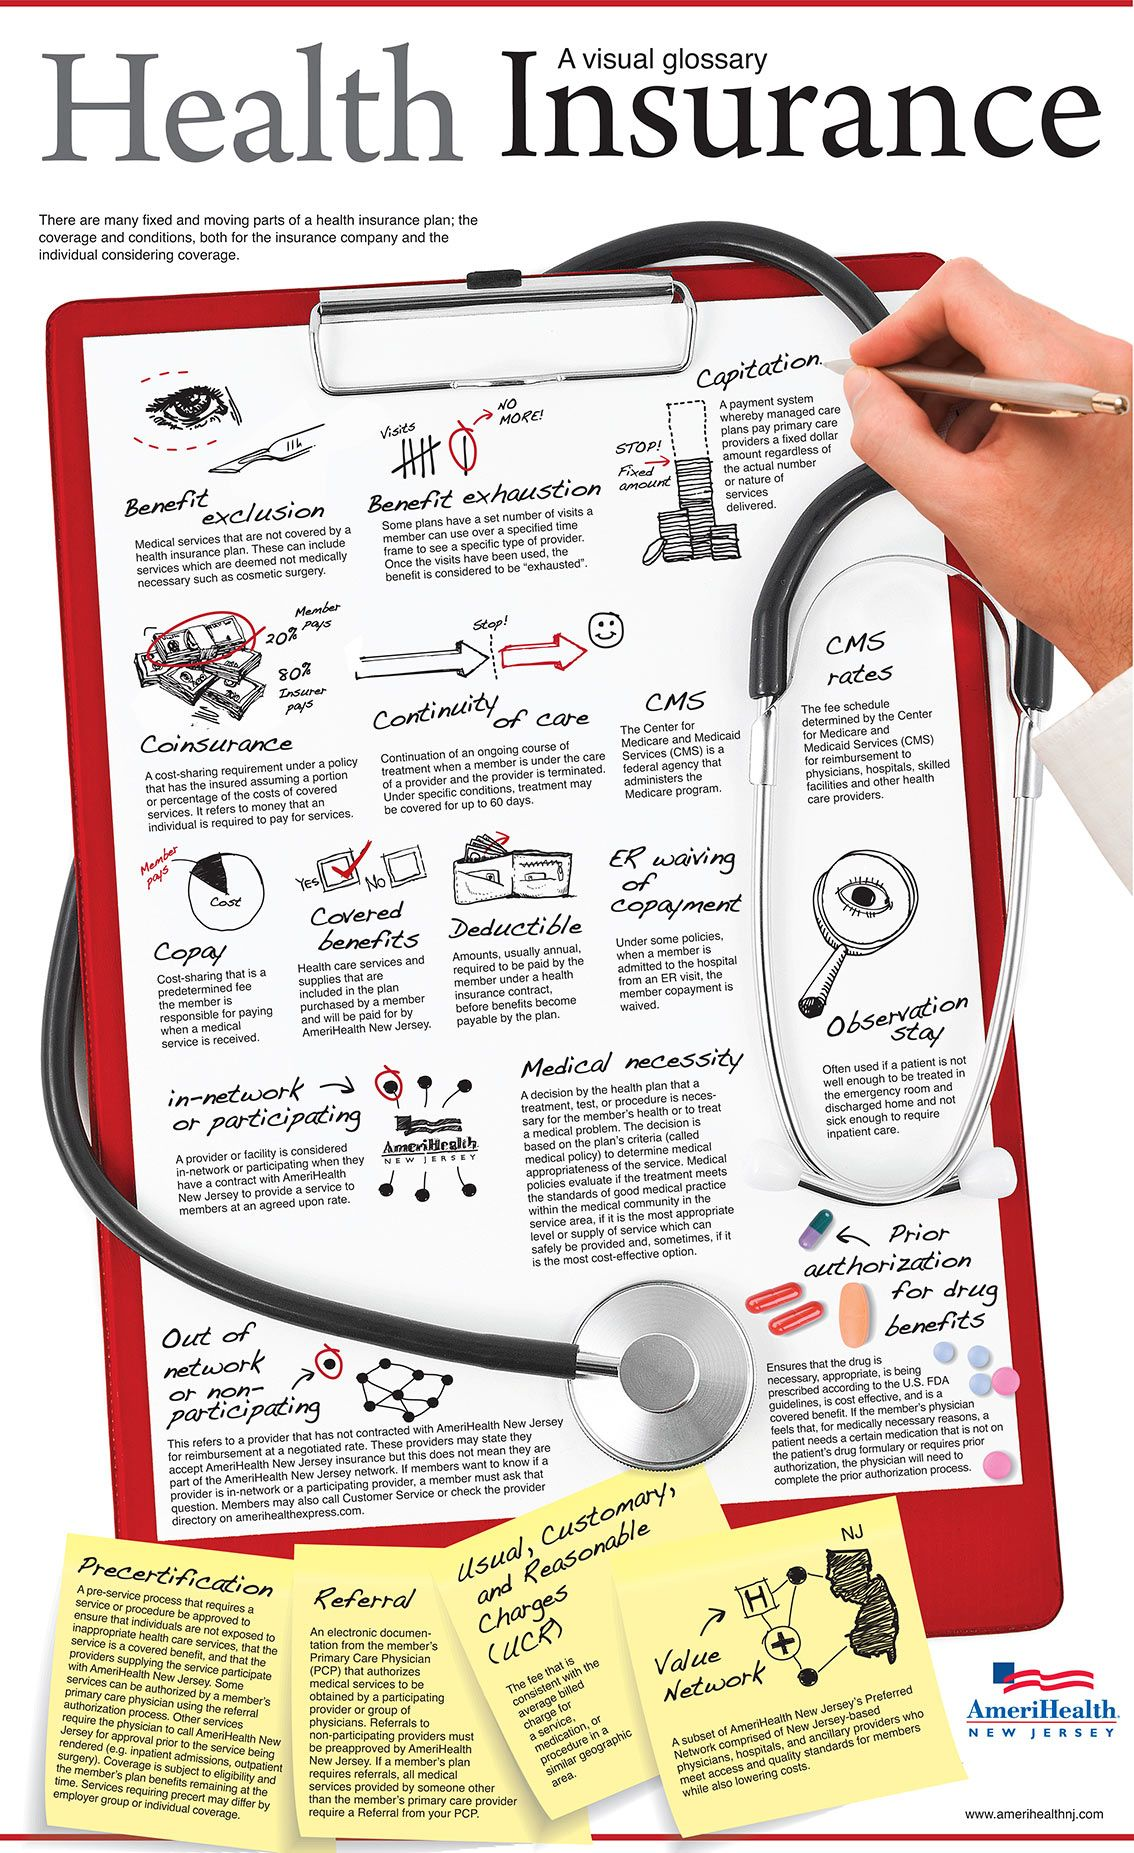 Health Insurance A Visual Glossary [Infographic] Health